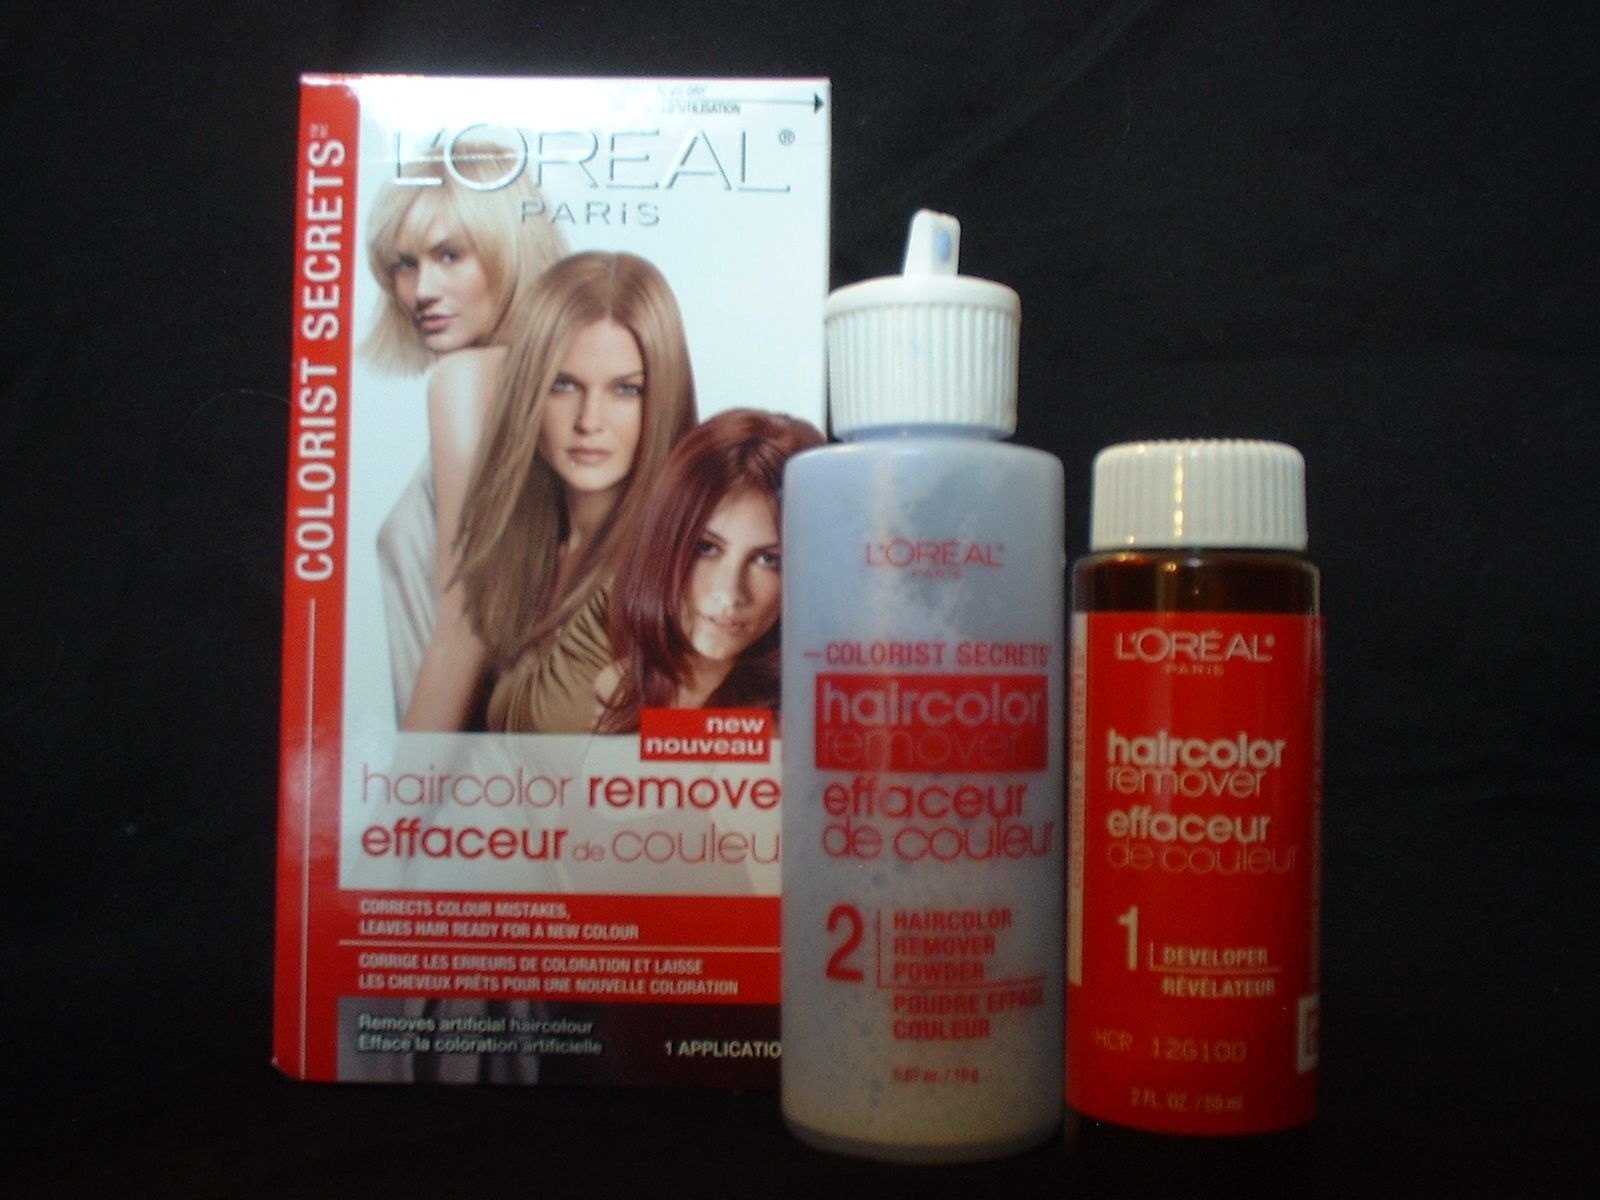 Pin By Pompeu Chiva On Hair Color Remover Pinterest Hair Color